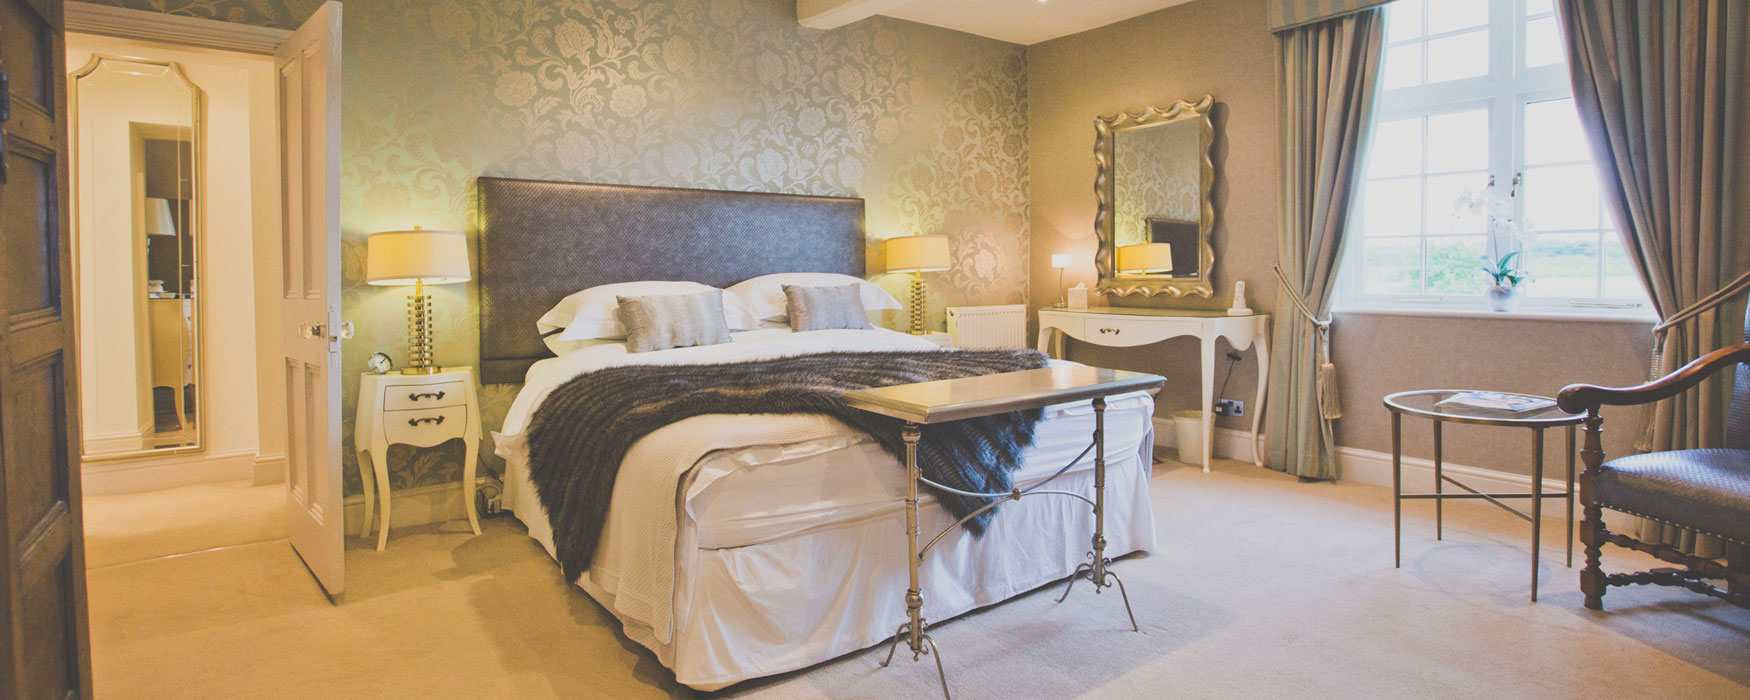 Boutique B&B with opulent interiors